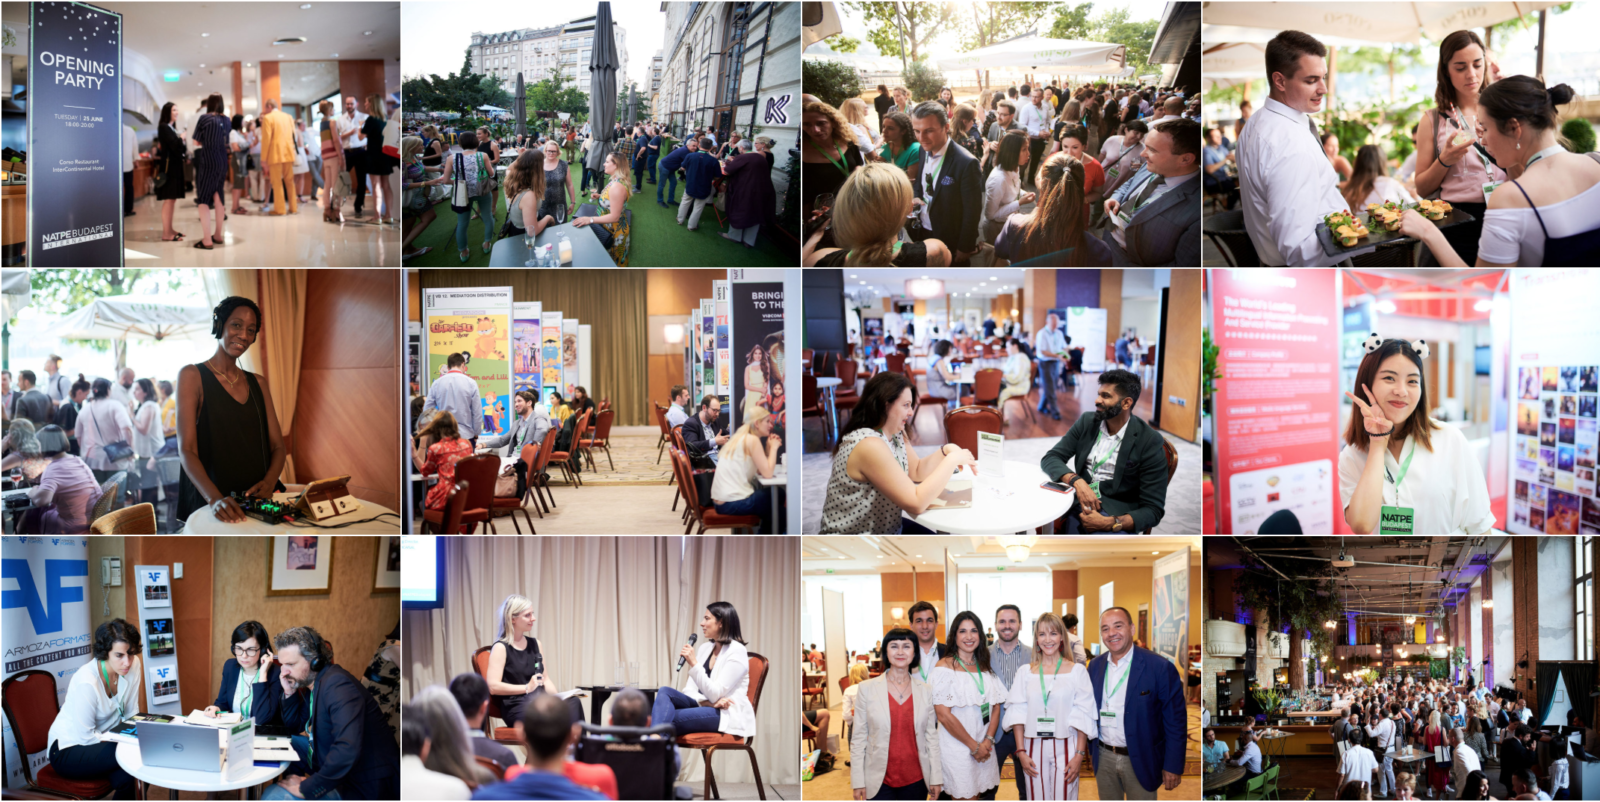 NATPE Budapest International – NATPE